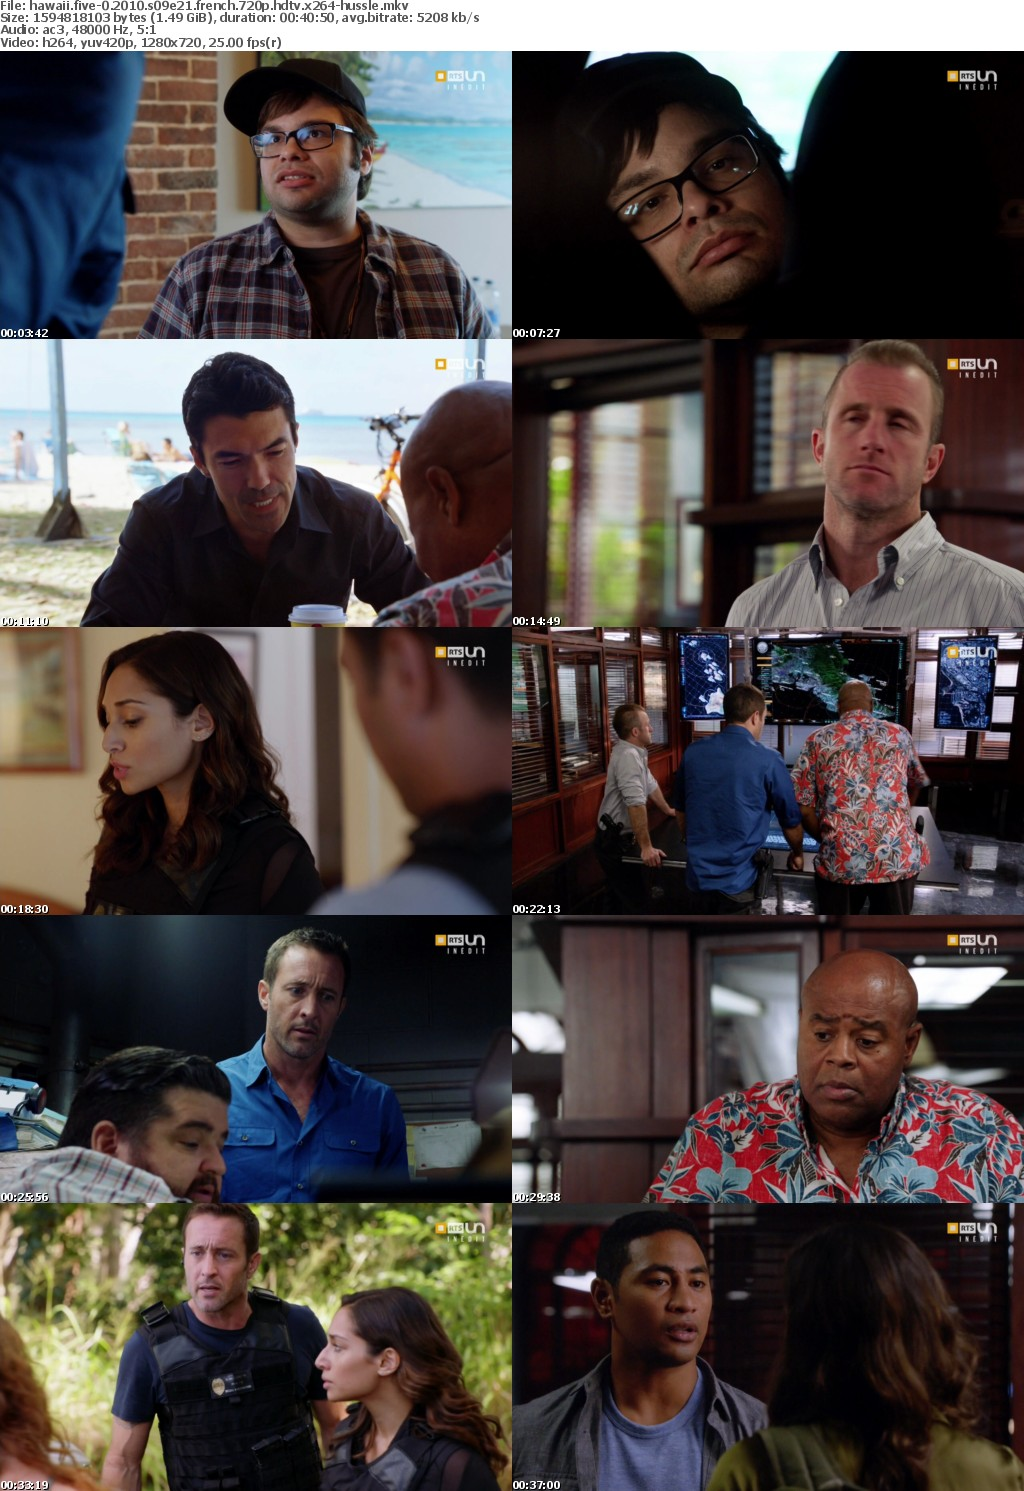 Hawaii Five-0 2010 S09E21 FRENCH 720p HDTV x264-HuSSLe